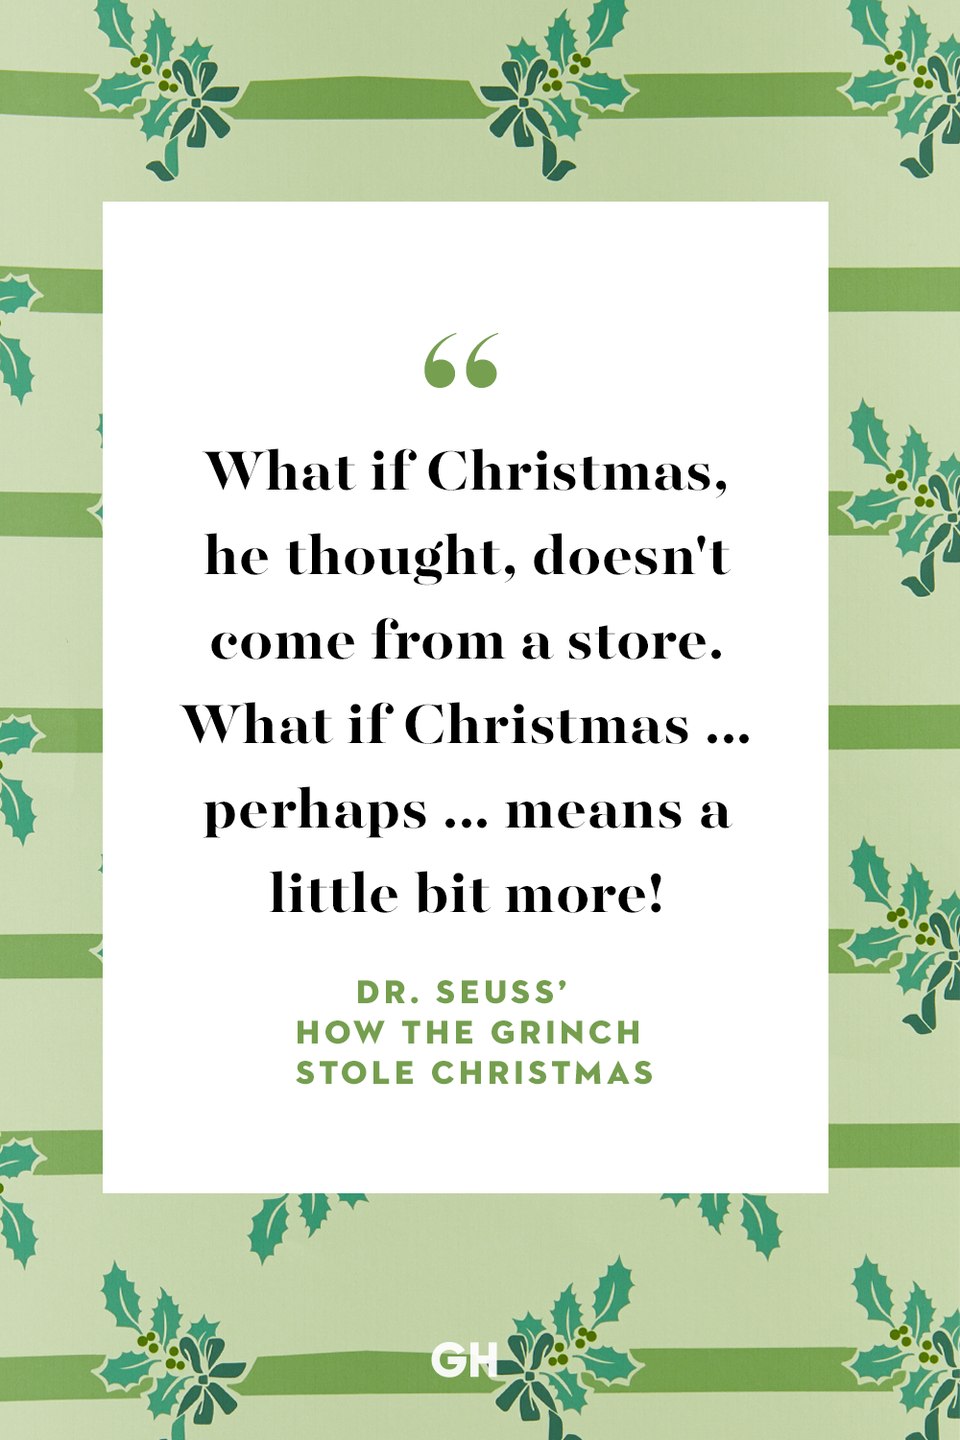 <p>What if Christmas, he thought, doesn't come from a store. What if Christmas ... perhaps ... means a little bit more!</p>